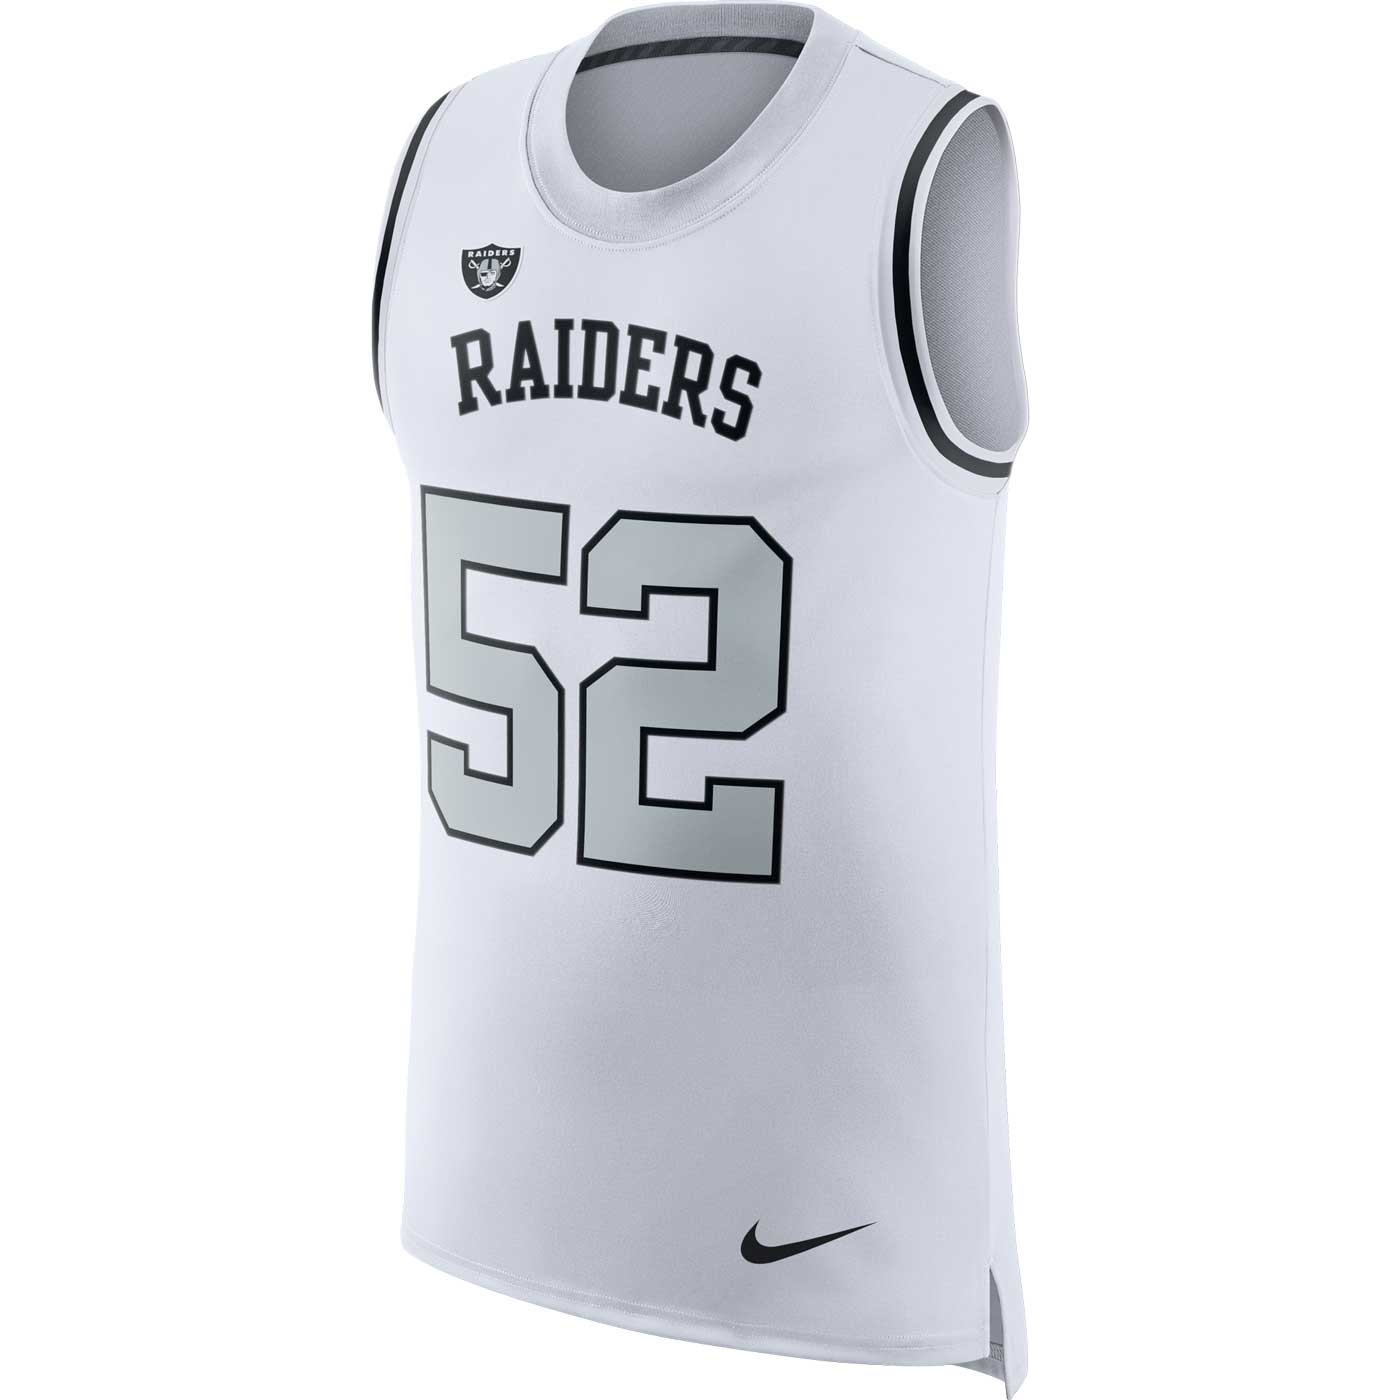 b786d416c Raiders Nike Khalil Mack Color Rush Tank Top